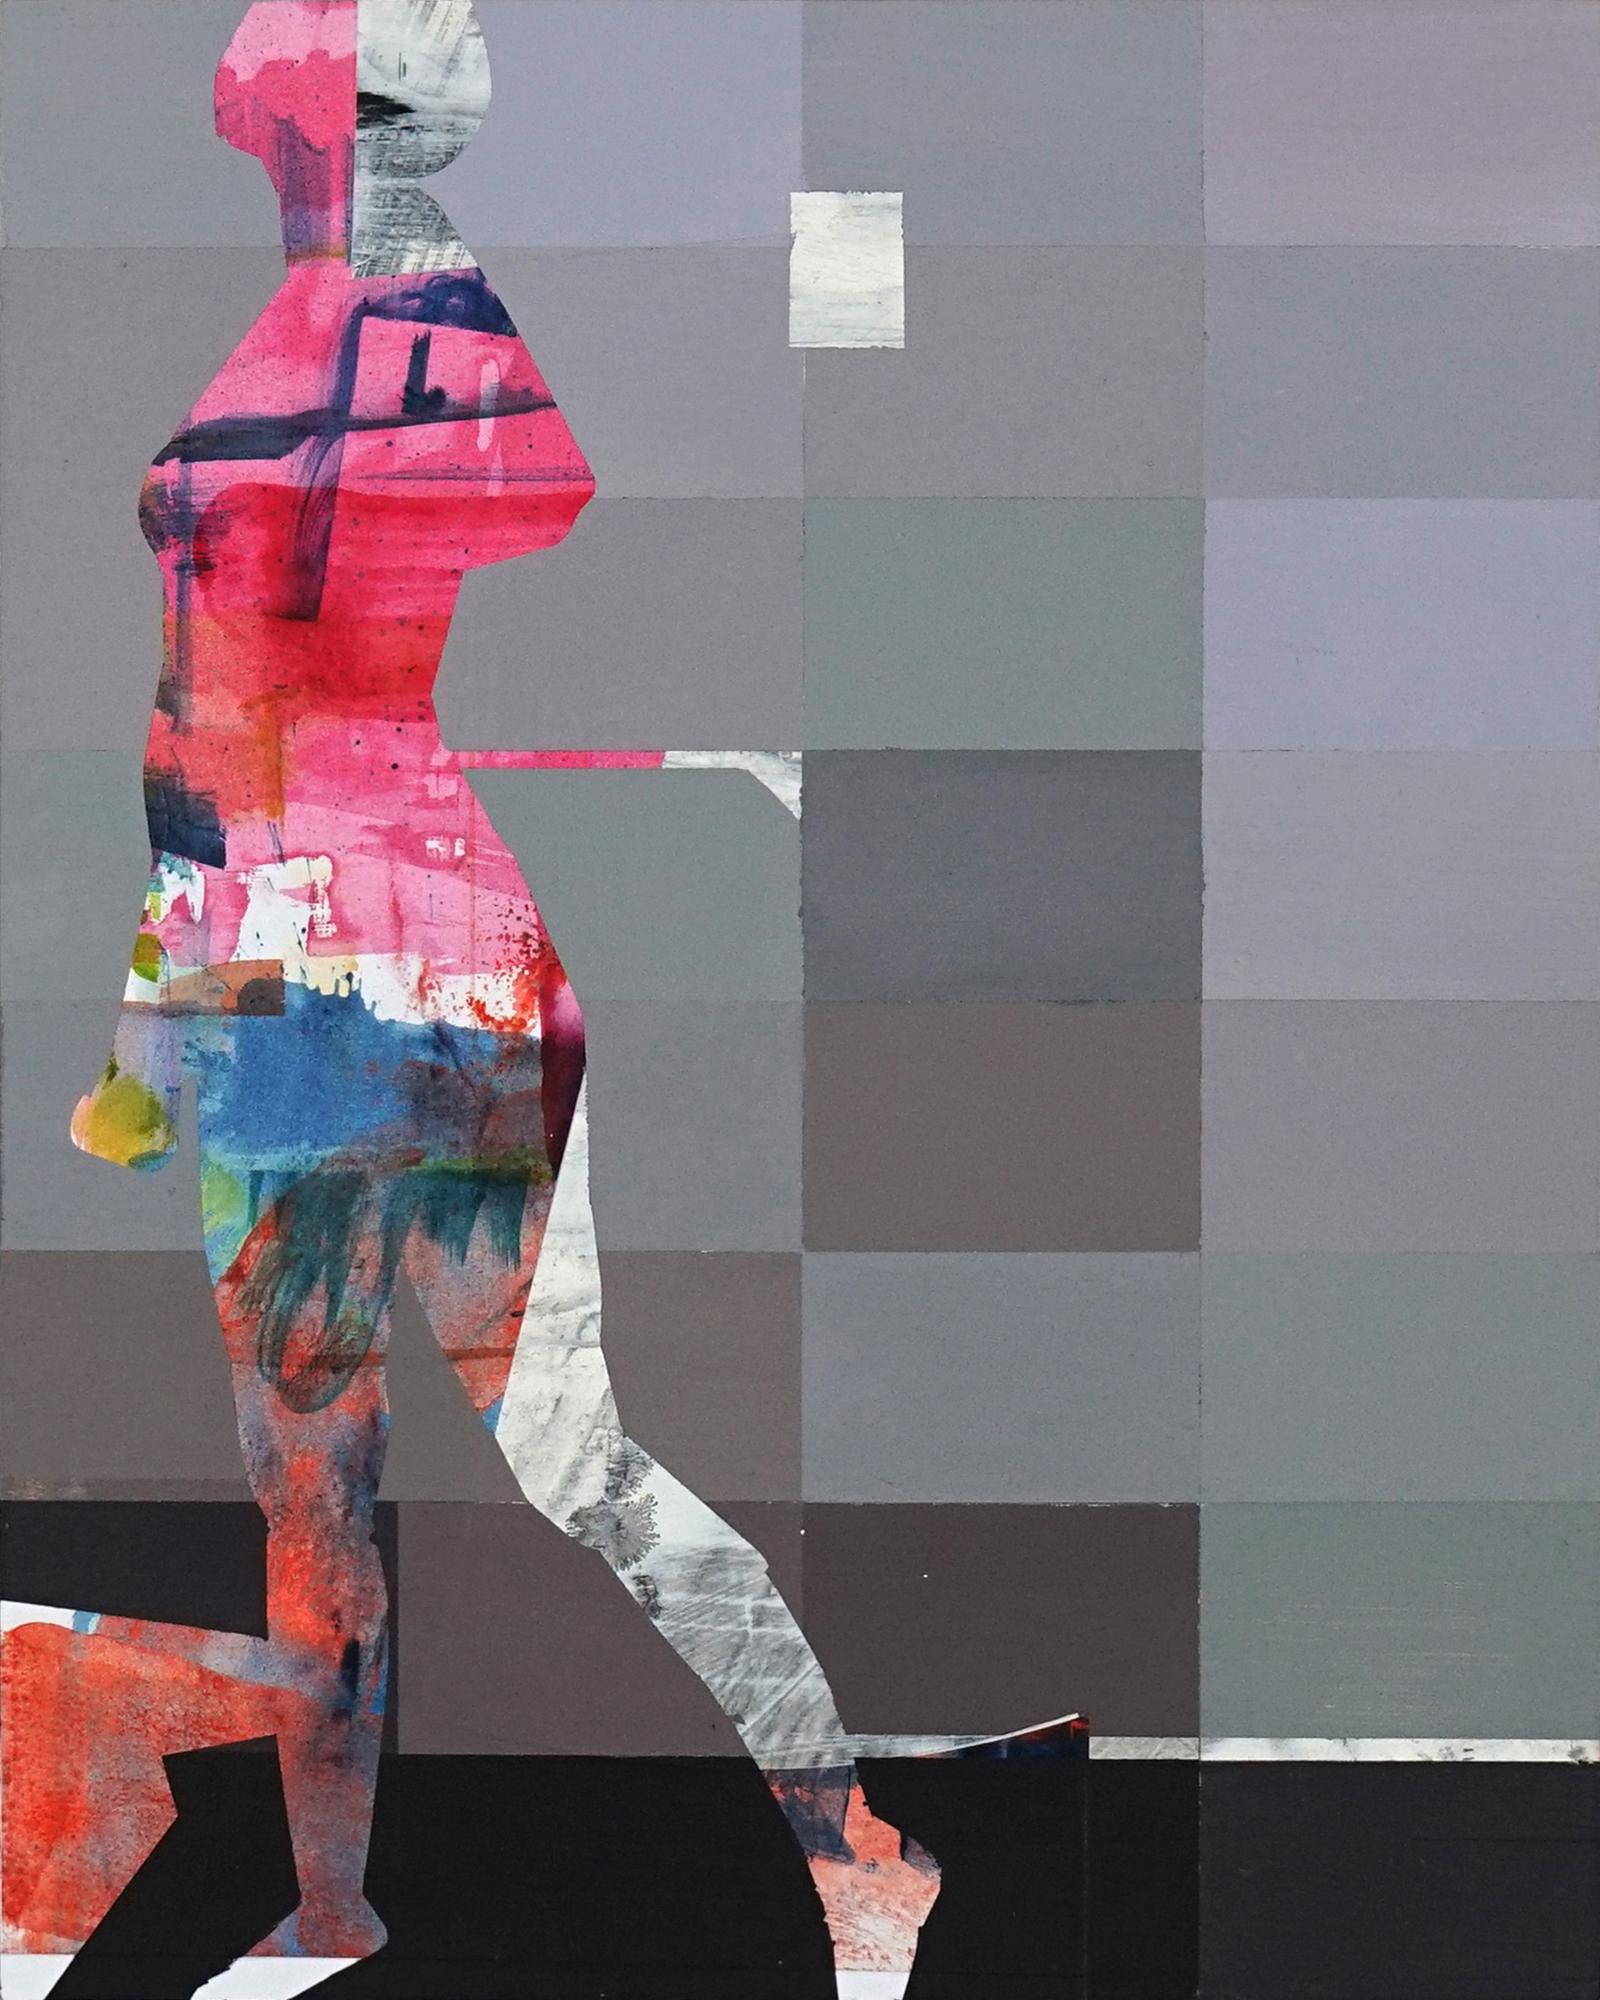 Pixel Study 1 - colorful abstract and figurative painting and photo of a women